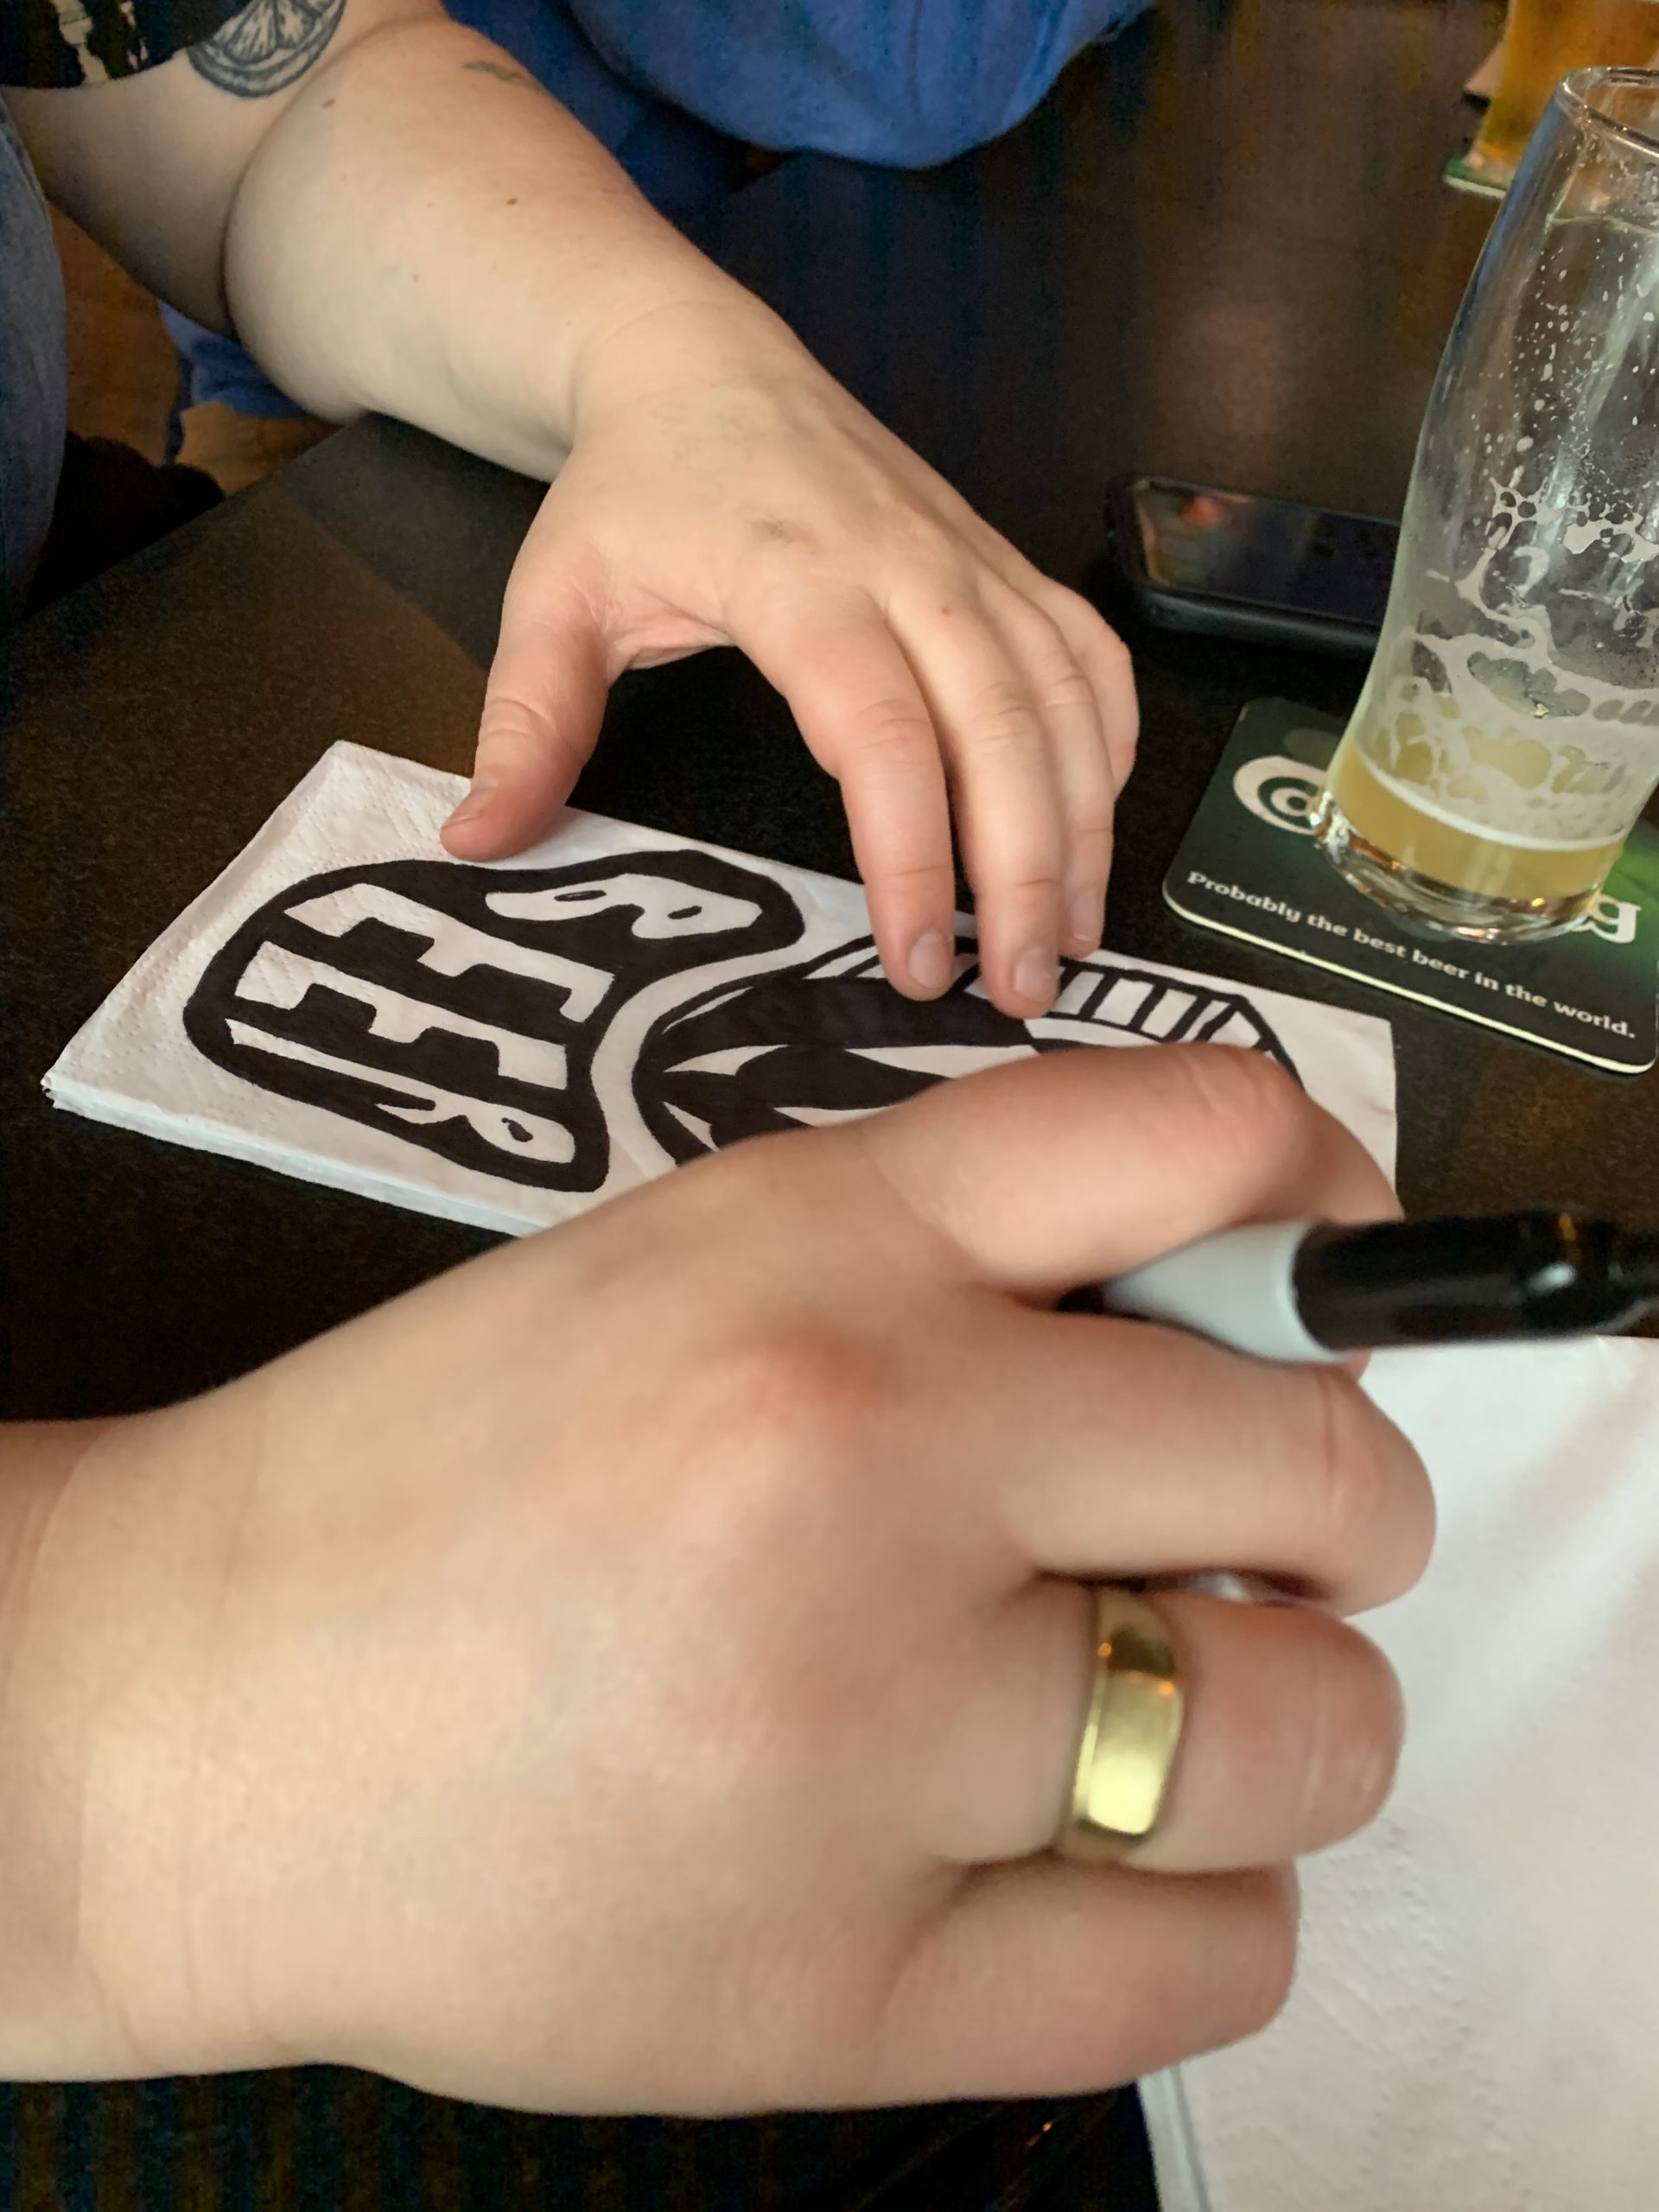 Brianna Ashe drawing on a napkin at Townline BBQ.